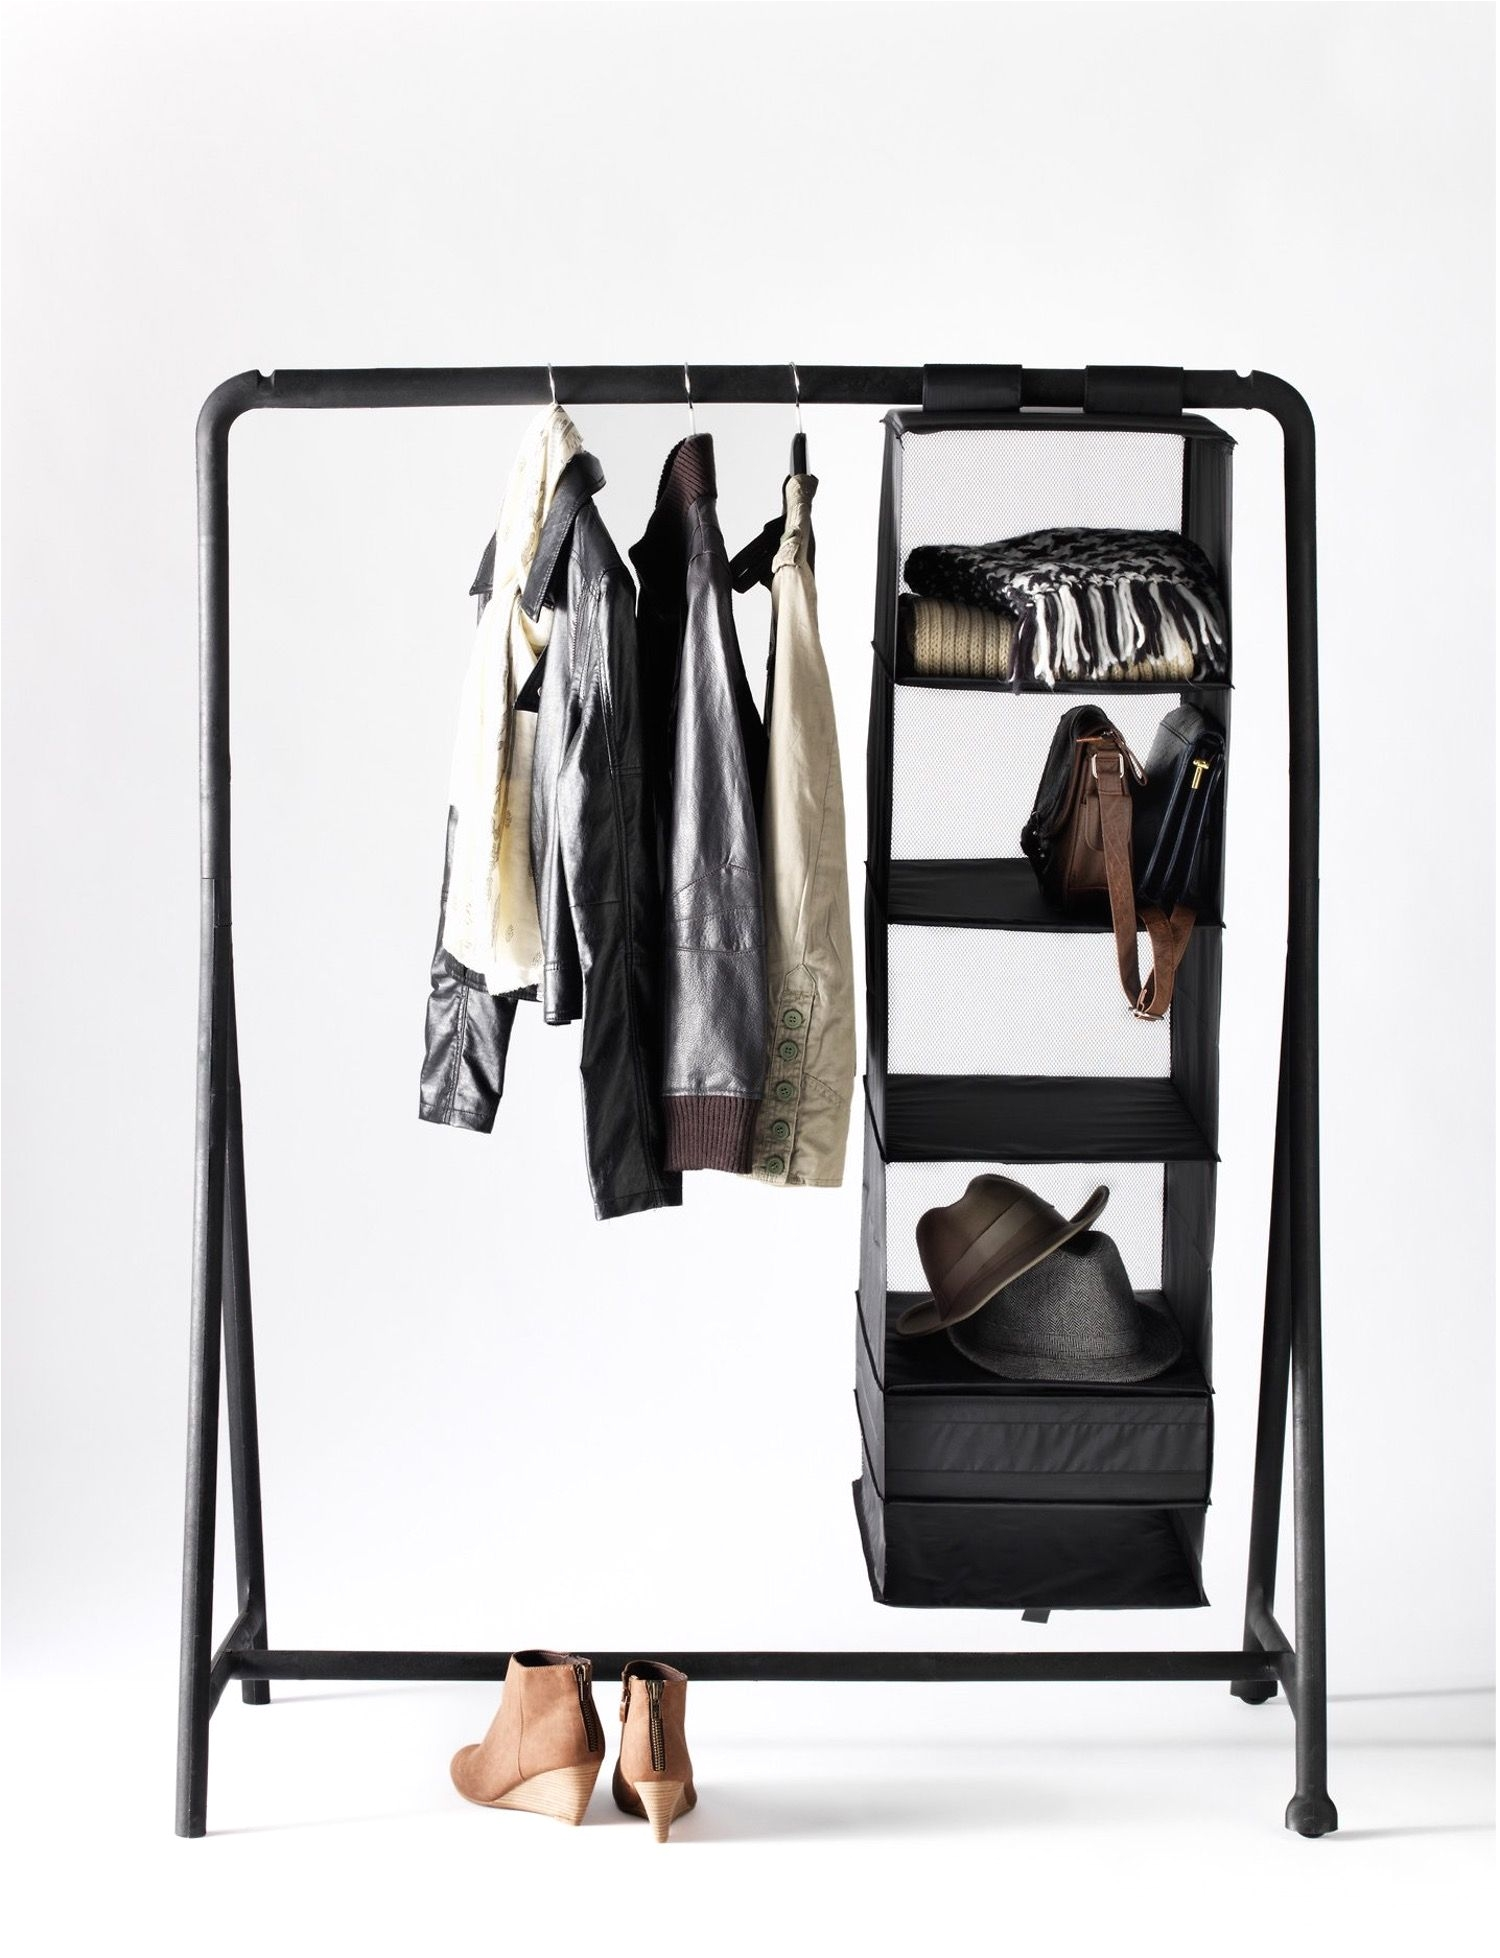 the best freestanding wardrobes and clothes racks annual guide 2016